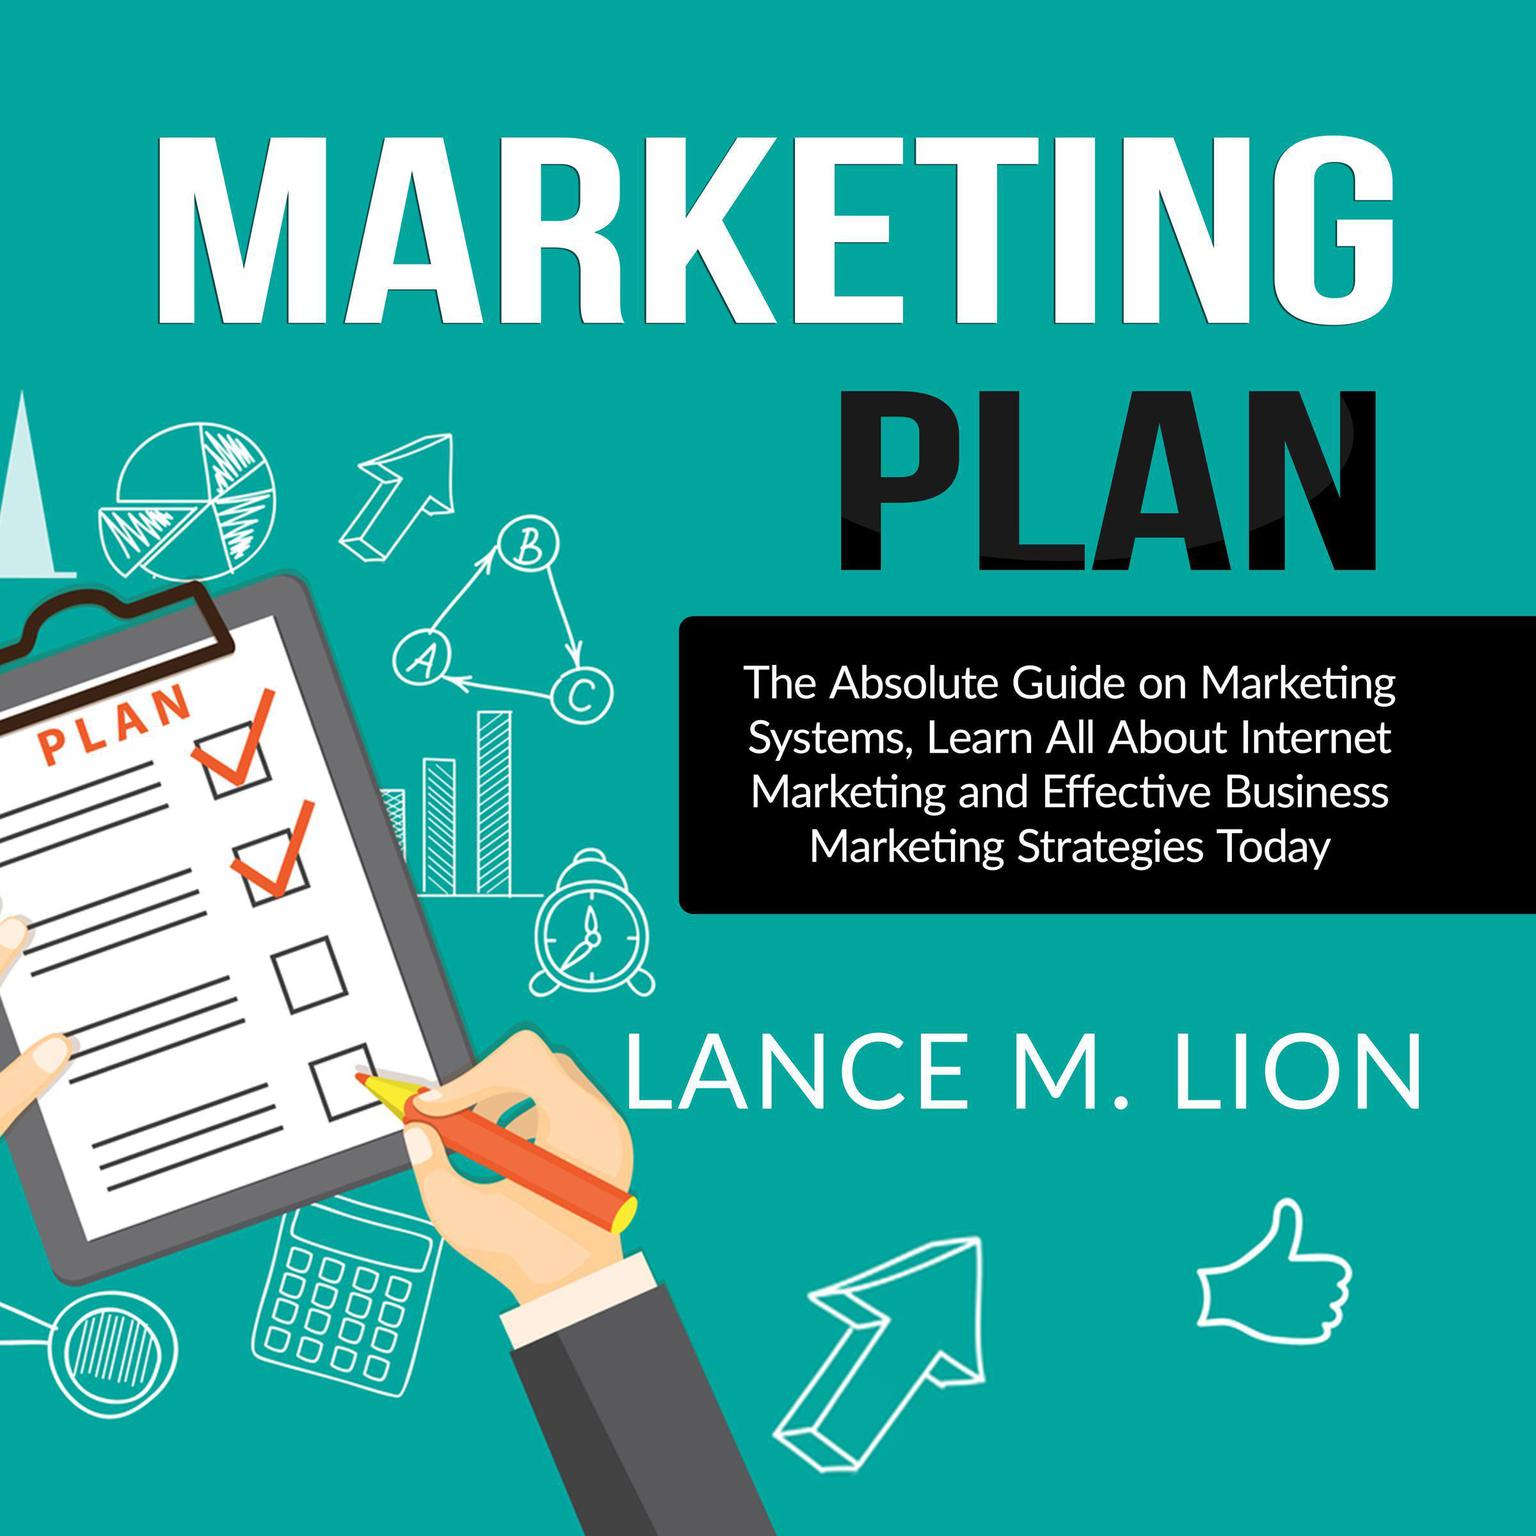 Marketing Plan: The Absolute Guide on Marketing Systems, Learn All About Internet Marketing and Effective Business Marketing Strategies Today Audiobook, by Lance M. Lion